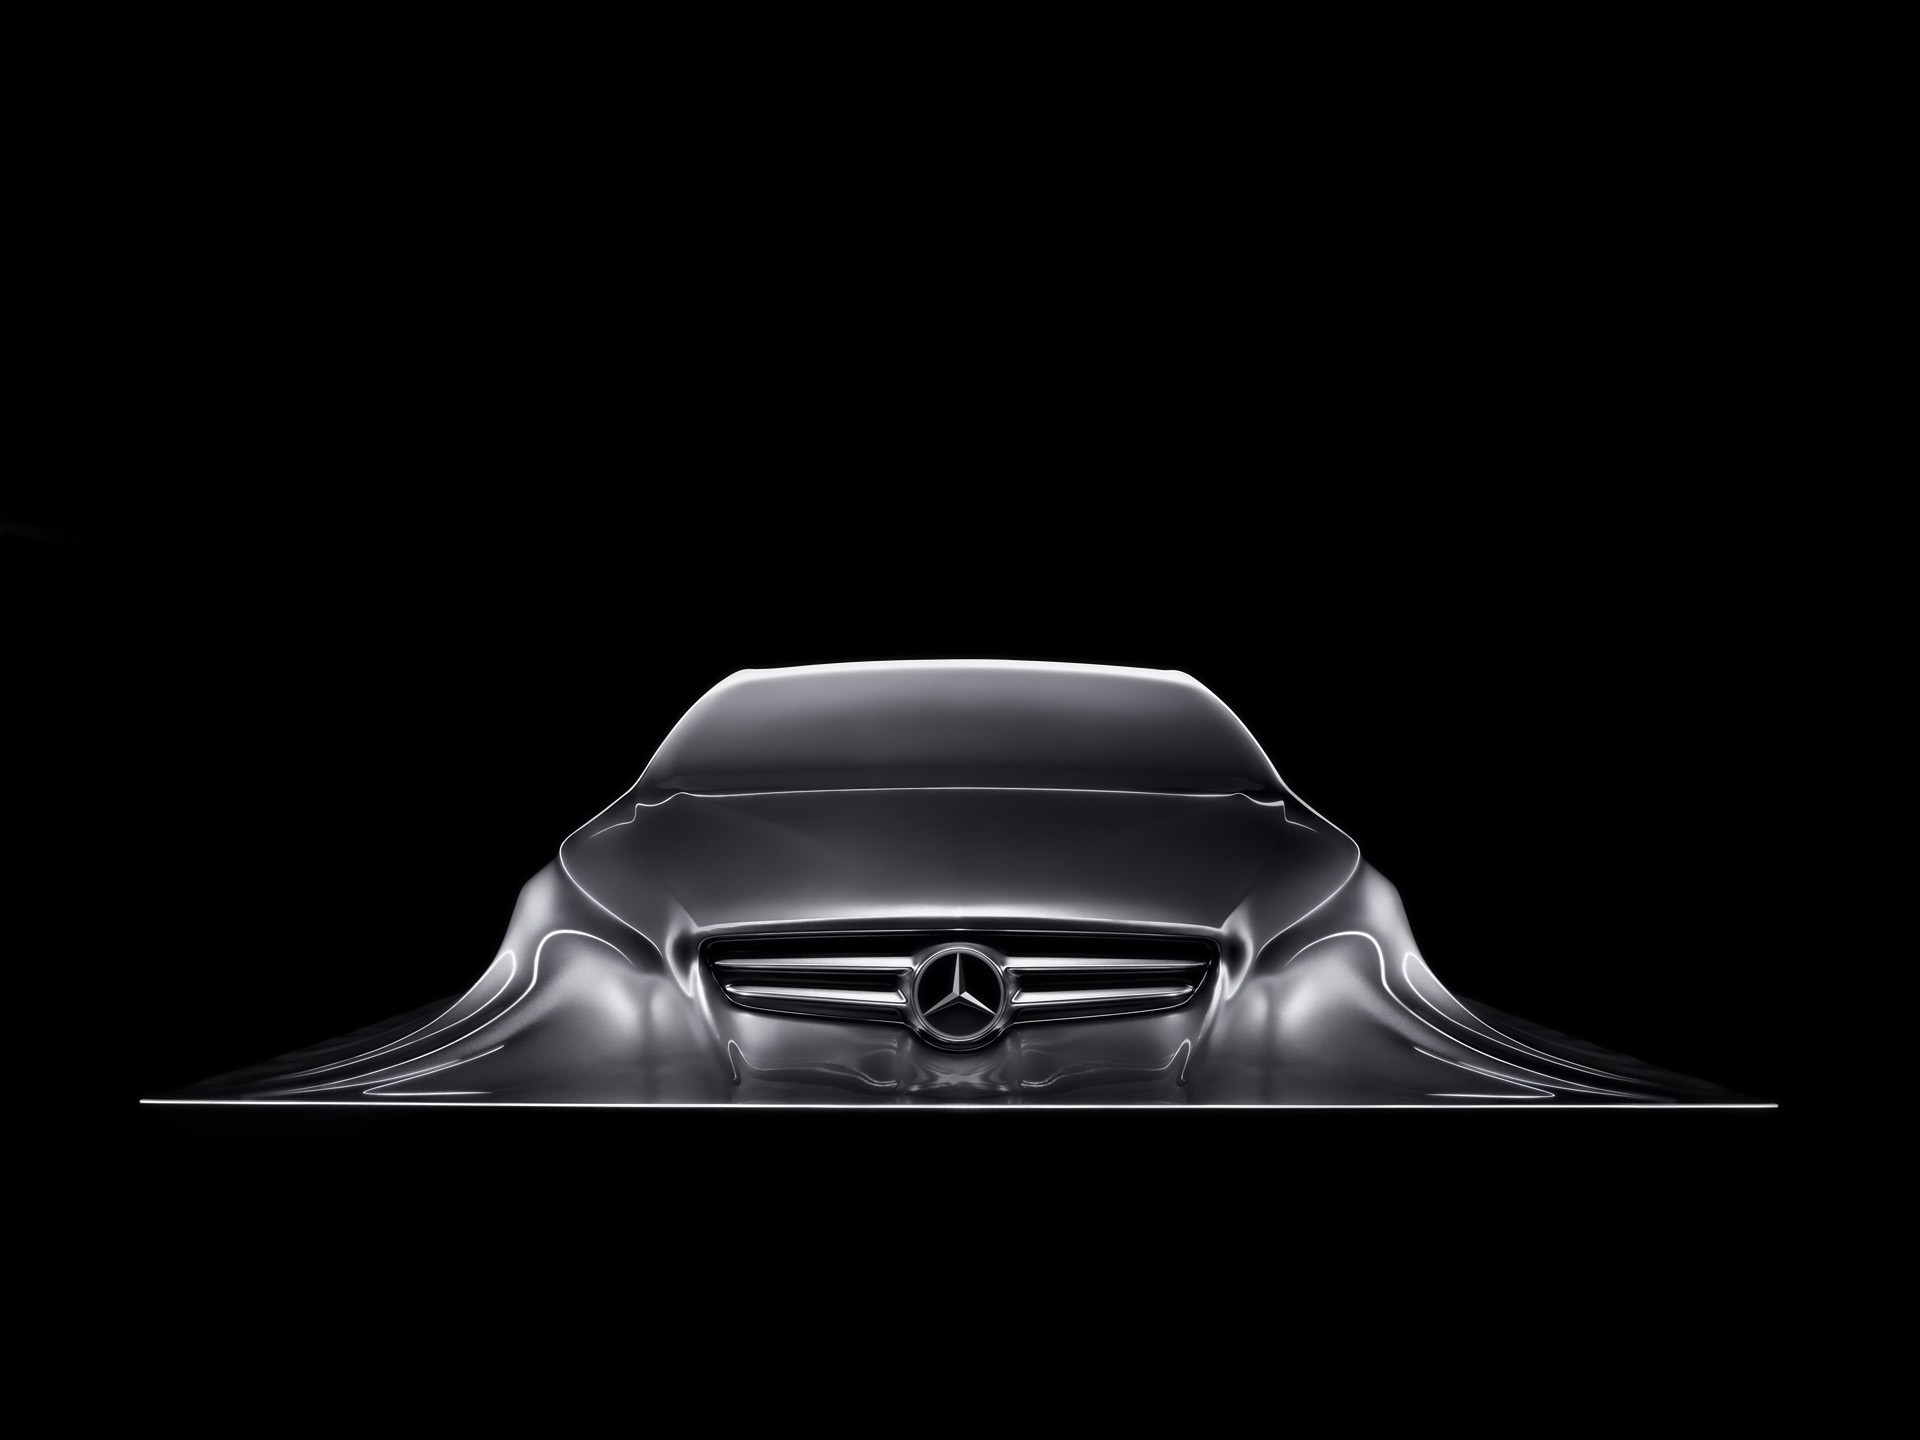 2010-mercedes-benz-design sculpture front 1920x1440